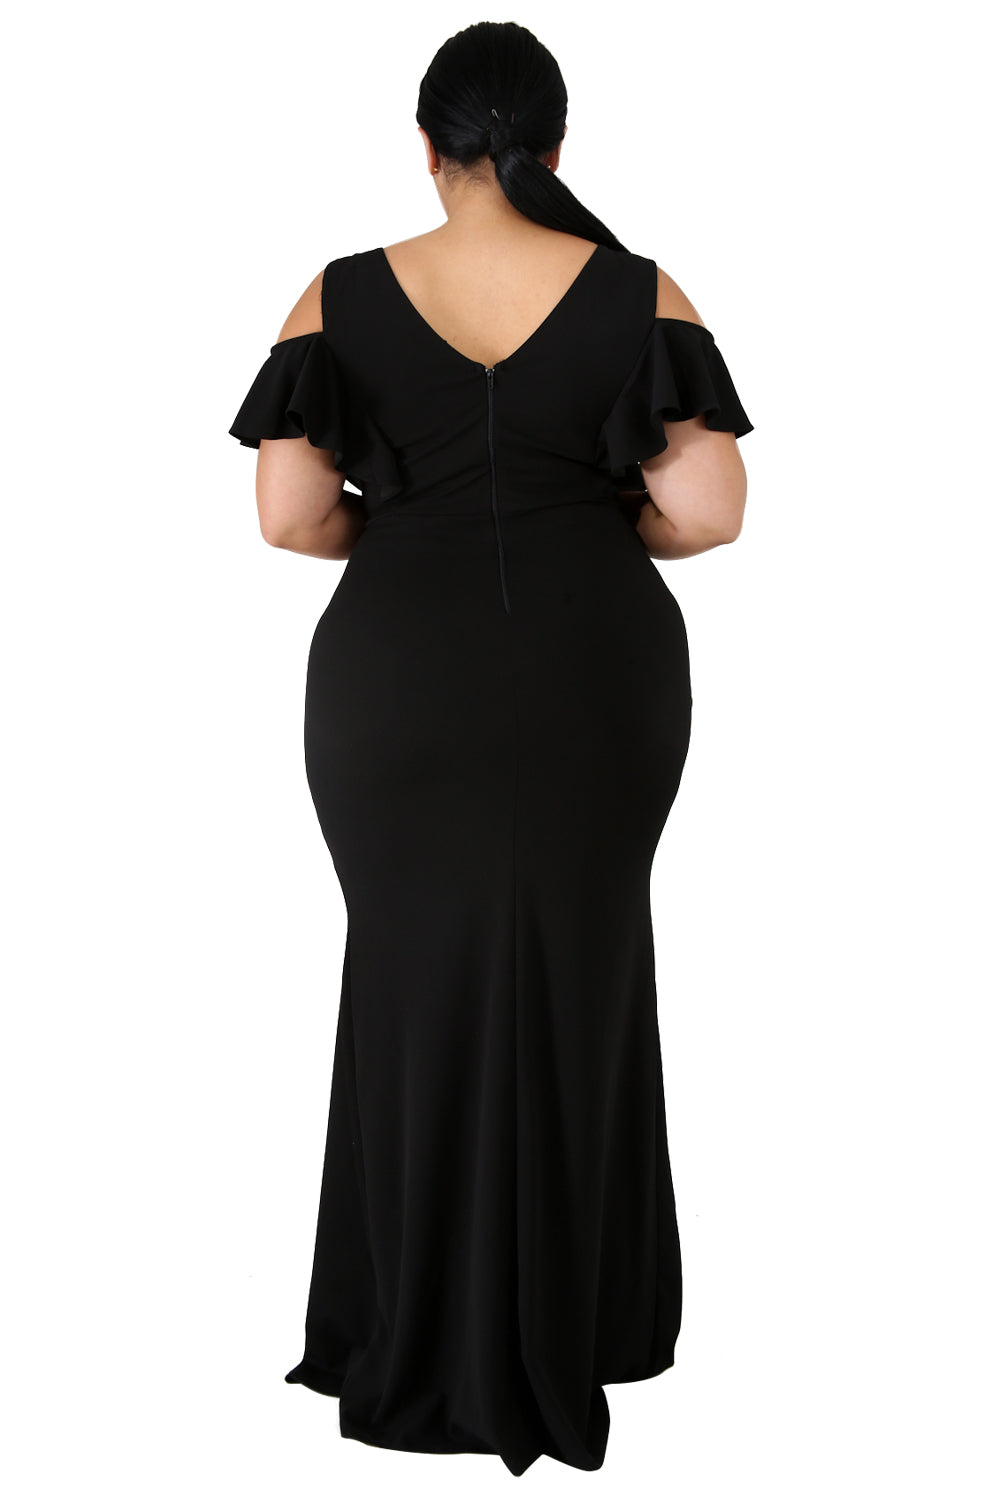 Black Plus Size Flamous Mermaid Dress Plus Size Dresses Discount Designer Fashion Clothes Shoes Bags Women Men Kids Children Black Owned Business